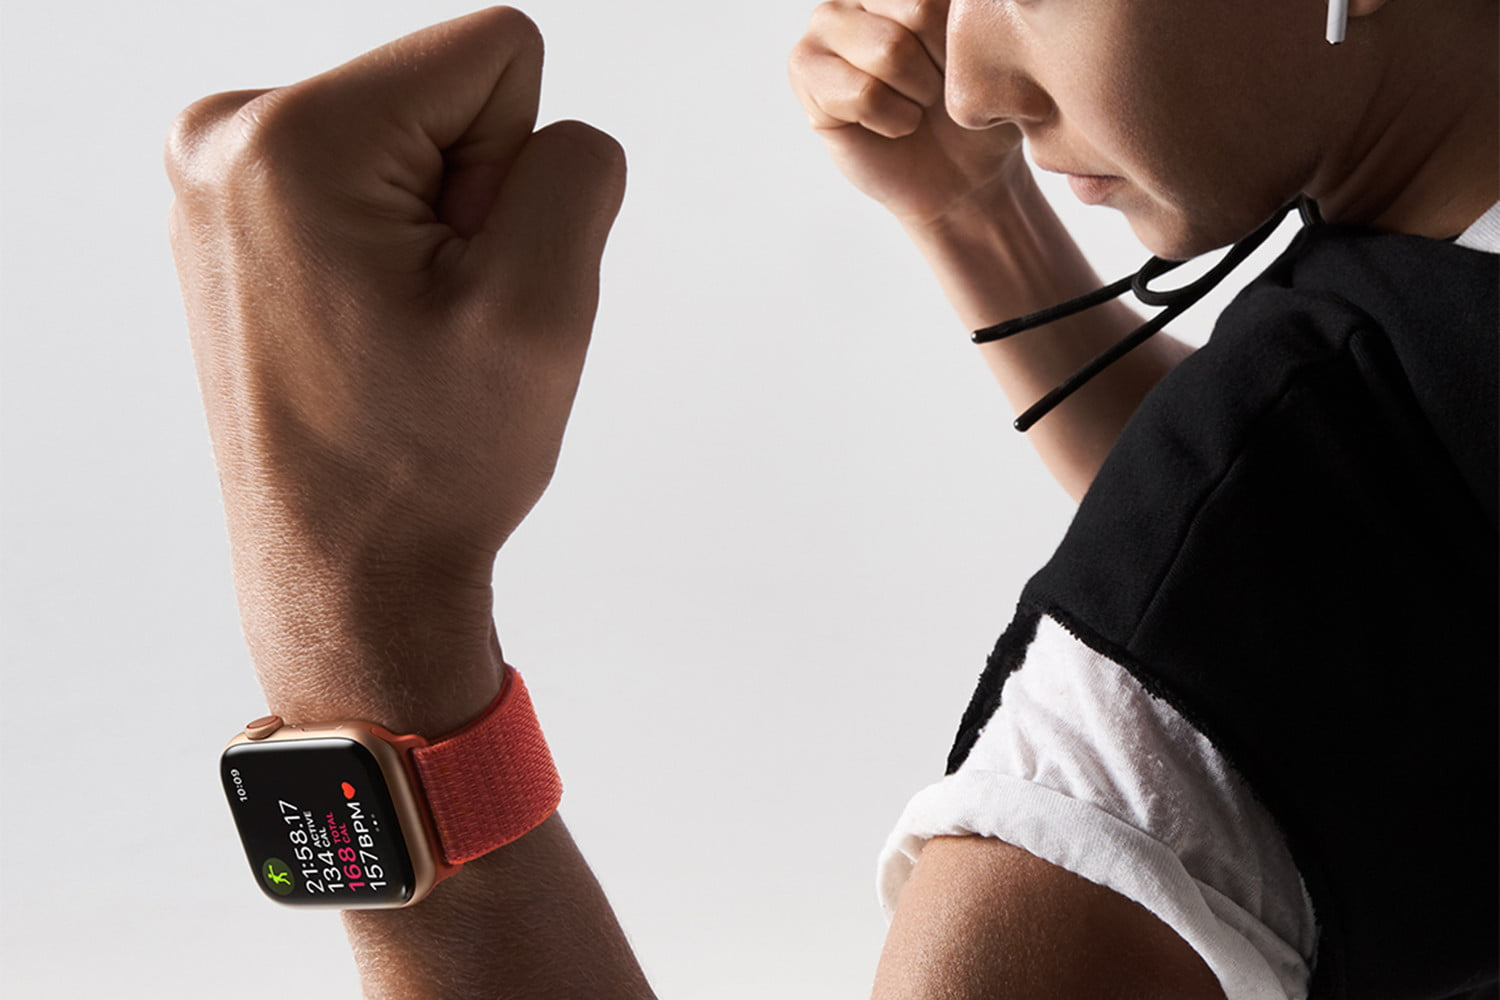 Could ECG Functionality in the New Apple Watch Save Lives ...